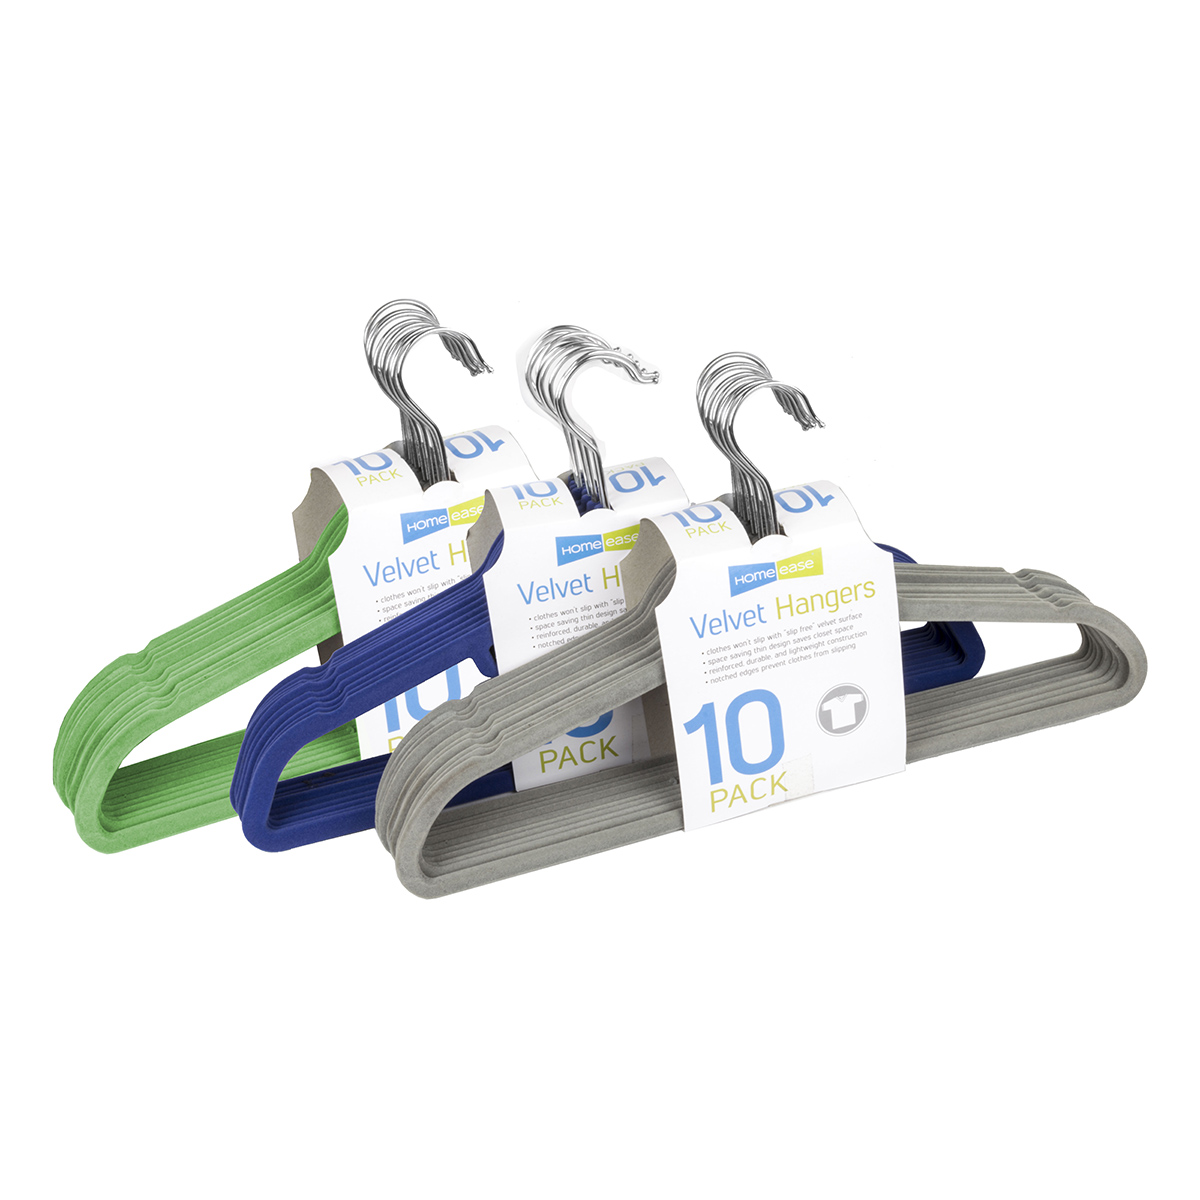 10 Pack Hangers, Assorted Colors